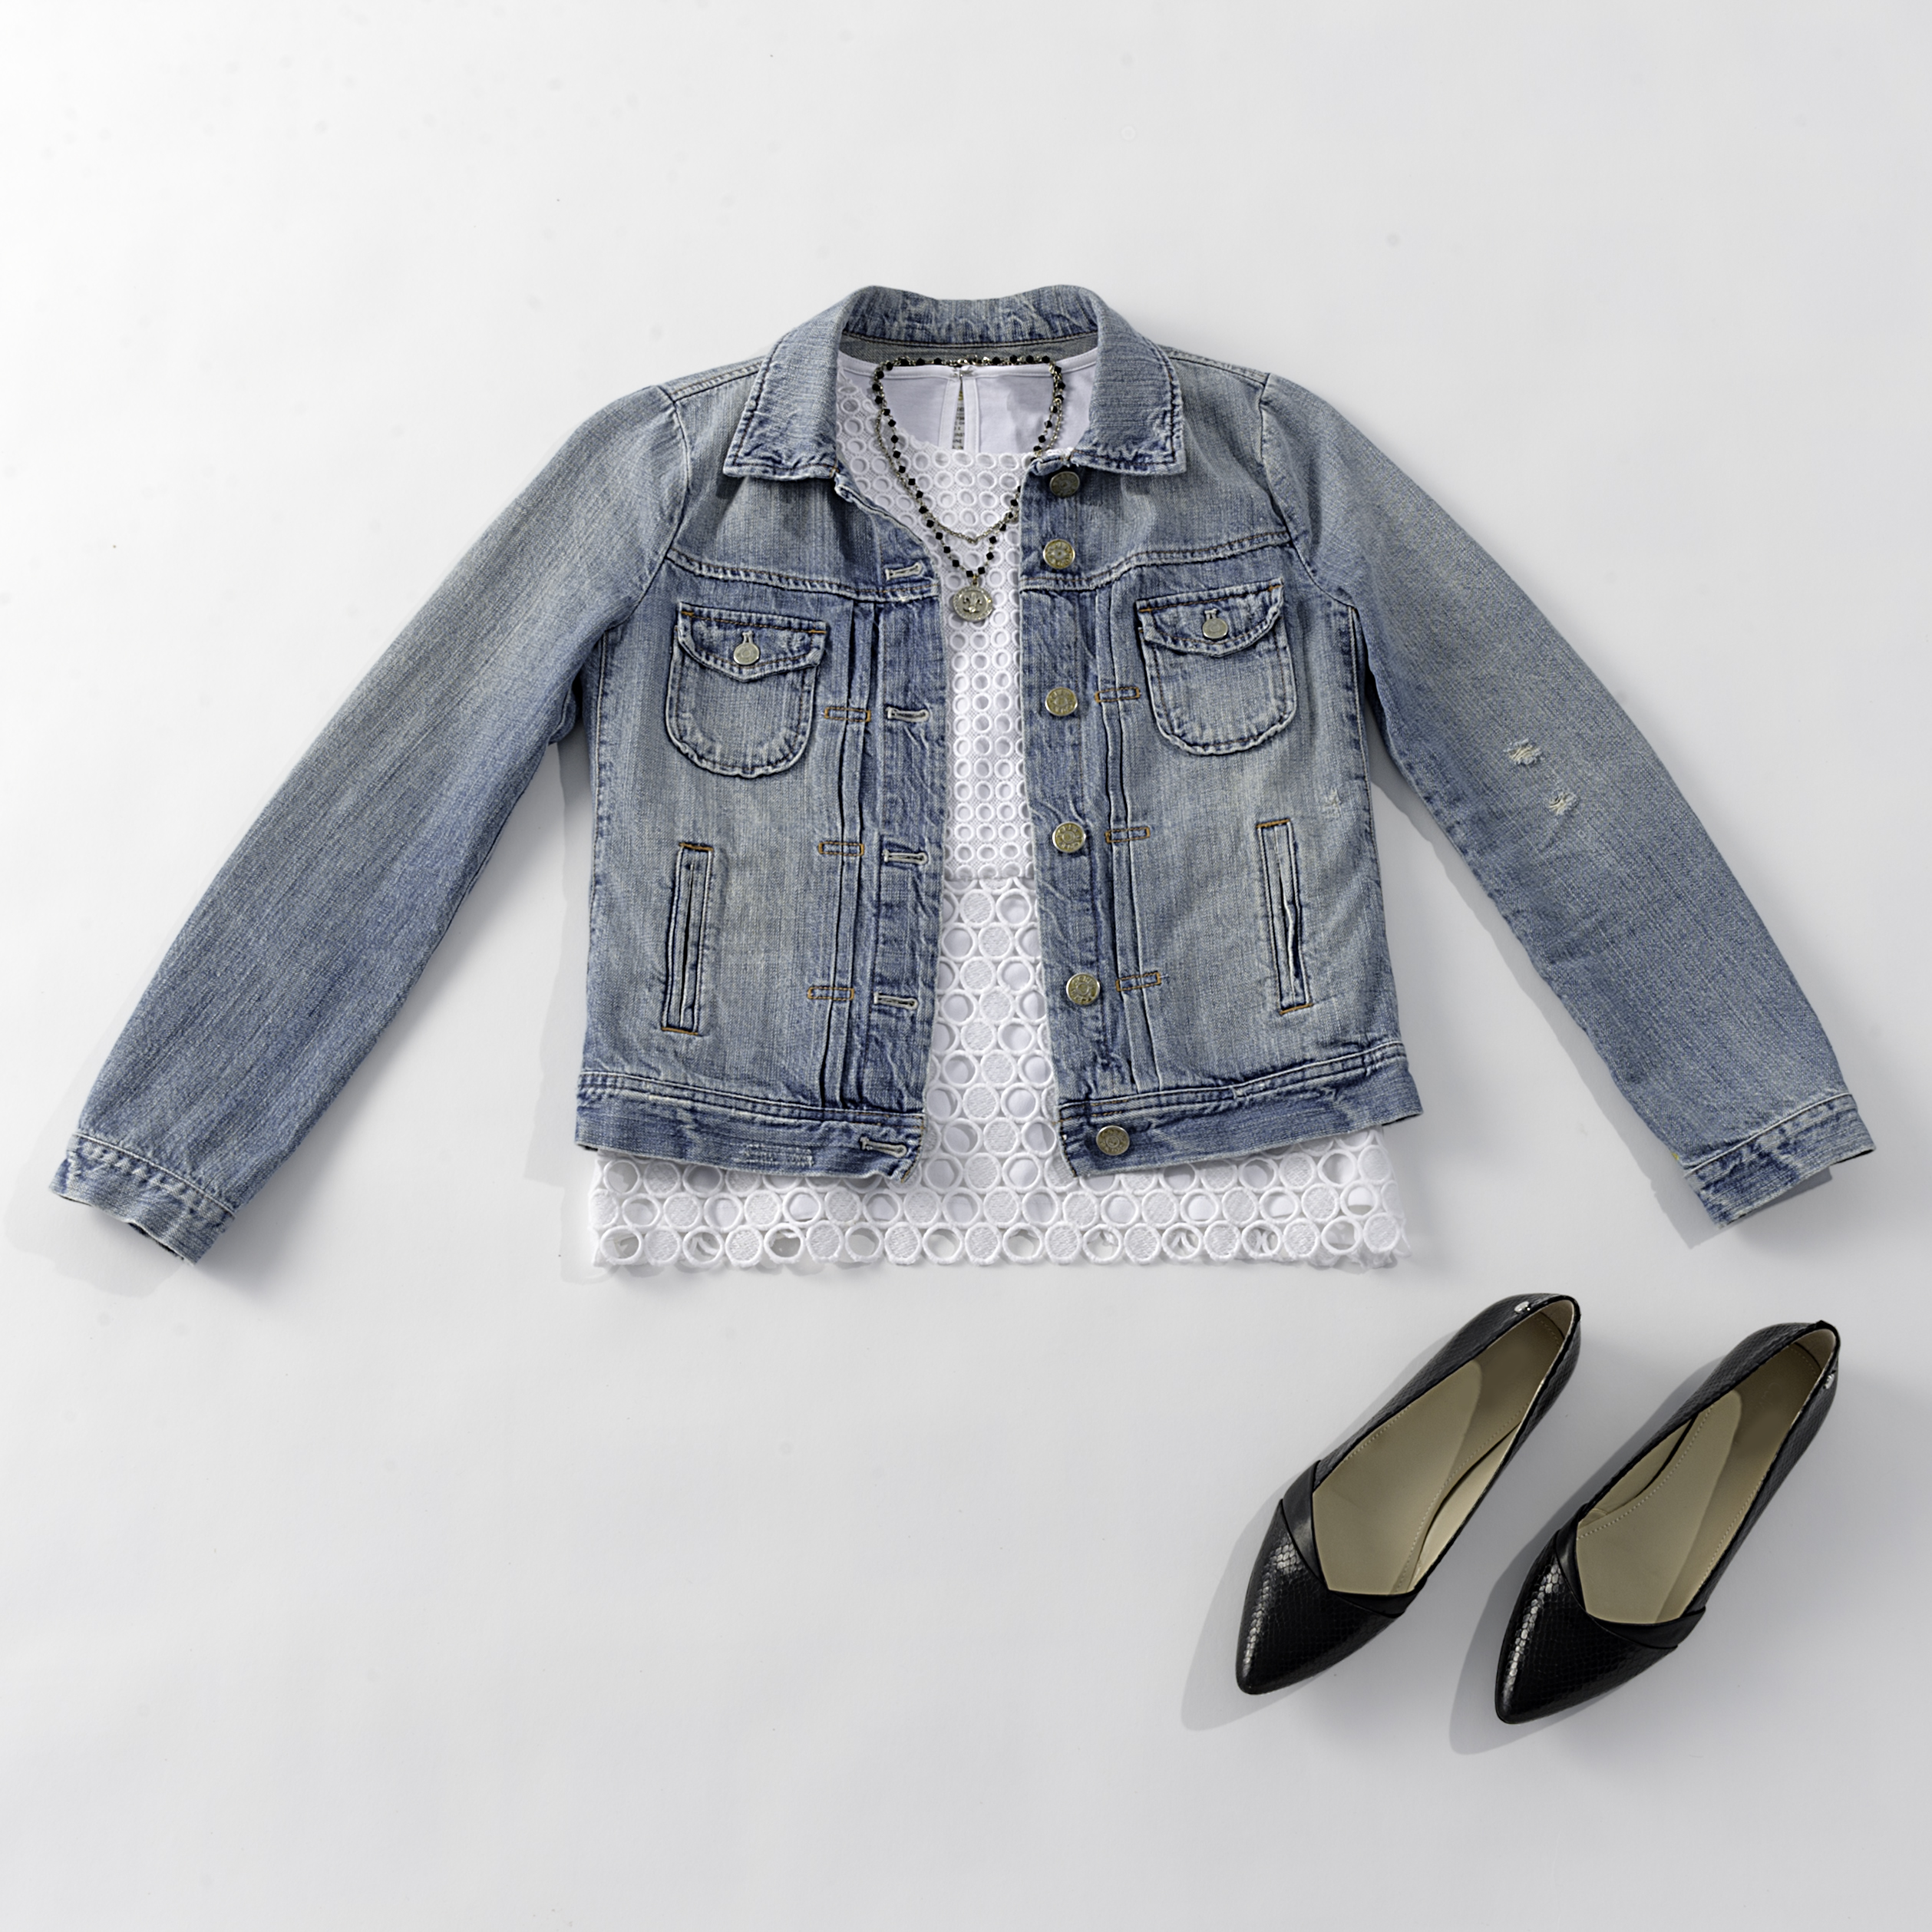 style & clothing introduction